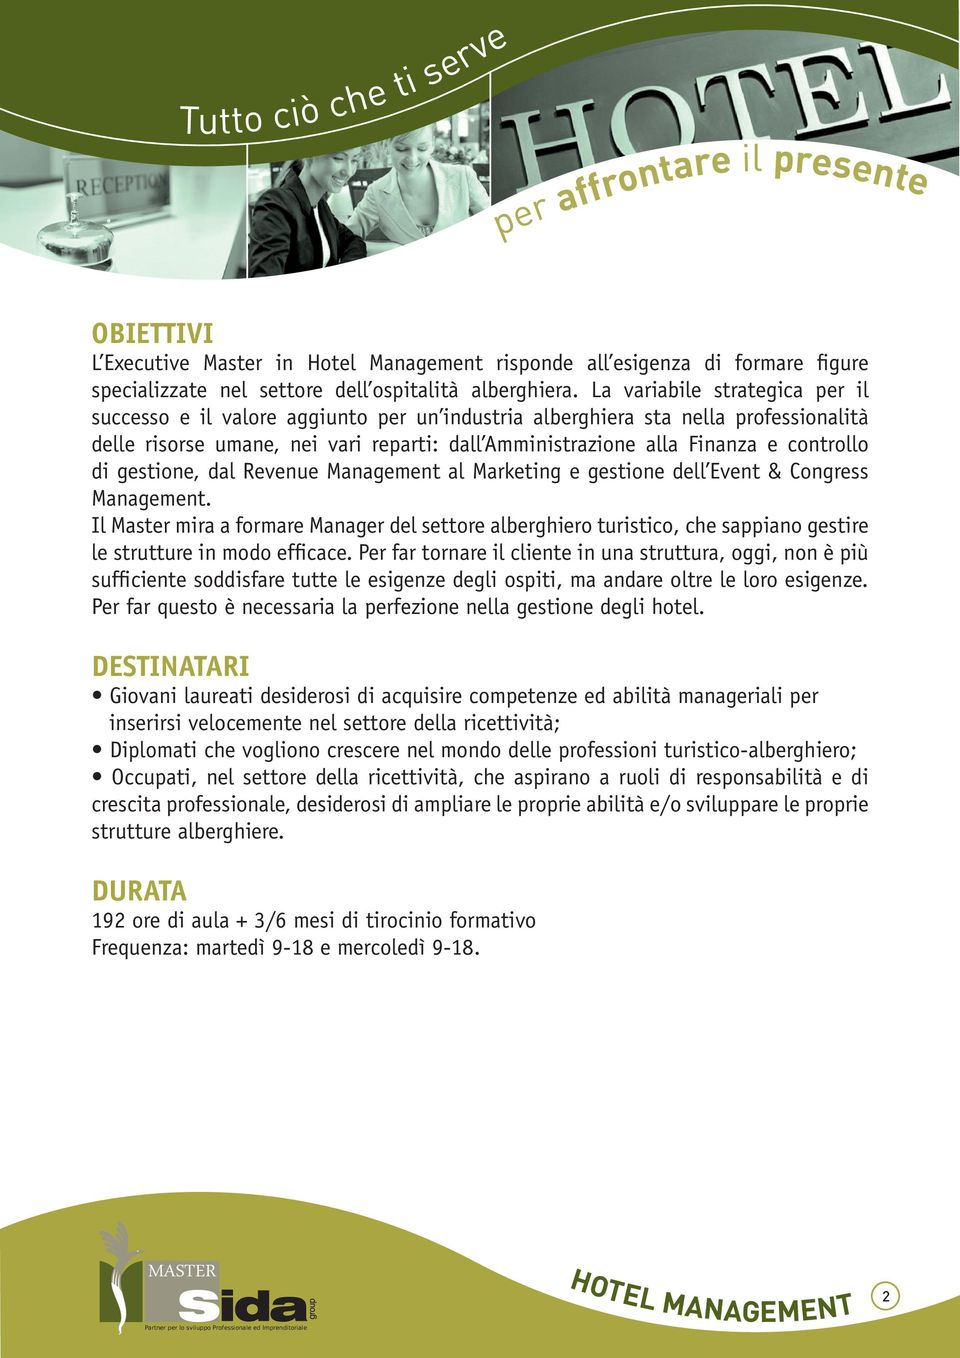 controllo di gestione, dal Revenue Management al Marketing e gestione dell Event & Congress Management.